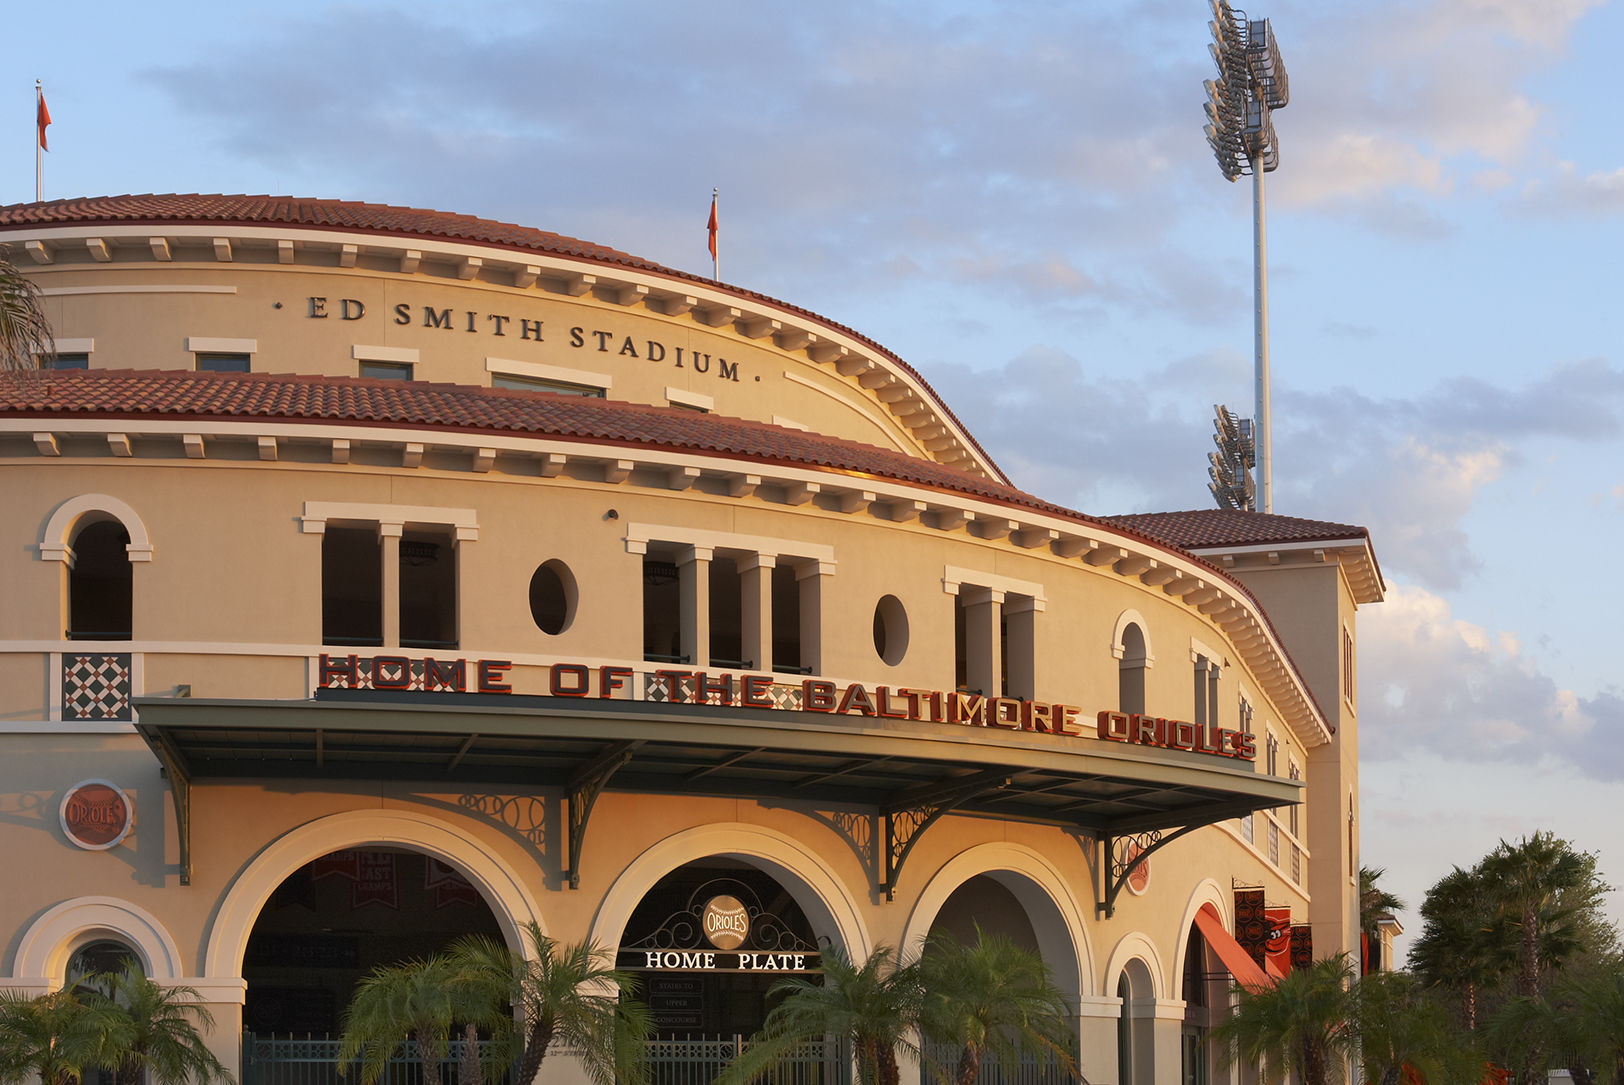 Ed smith stadium exterior yozzi2